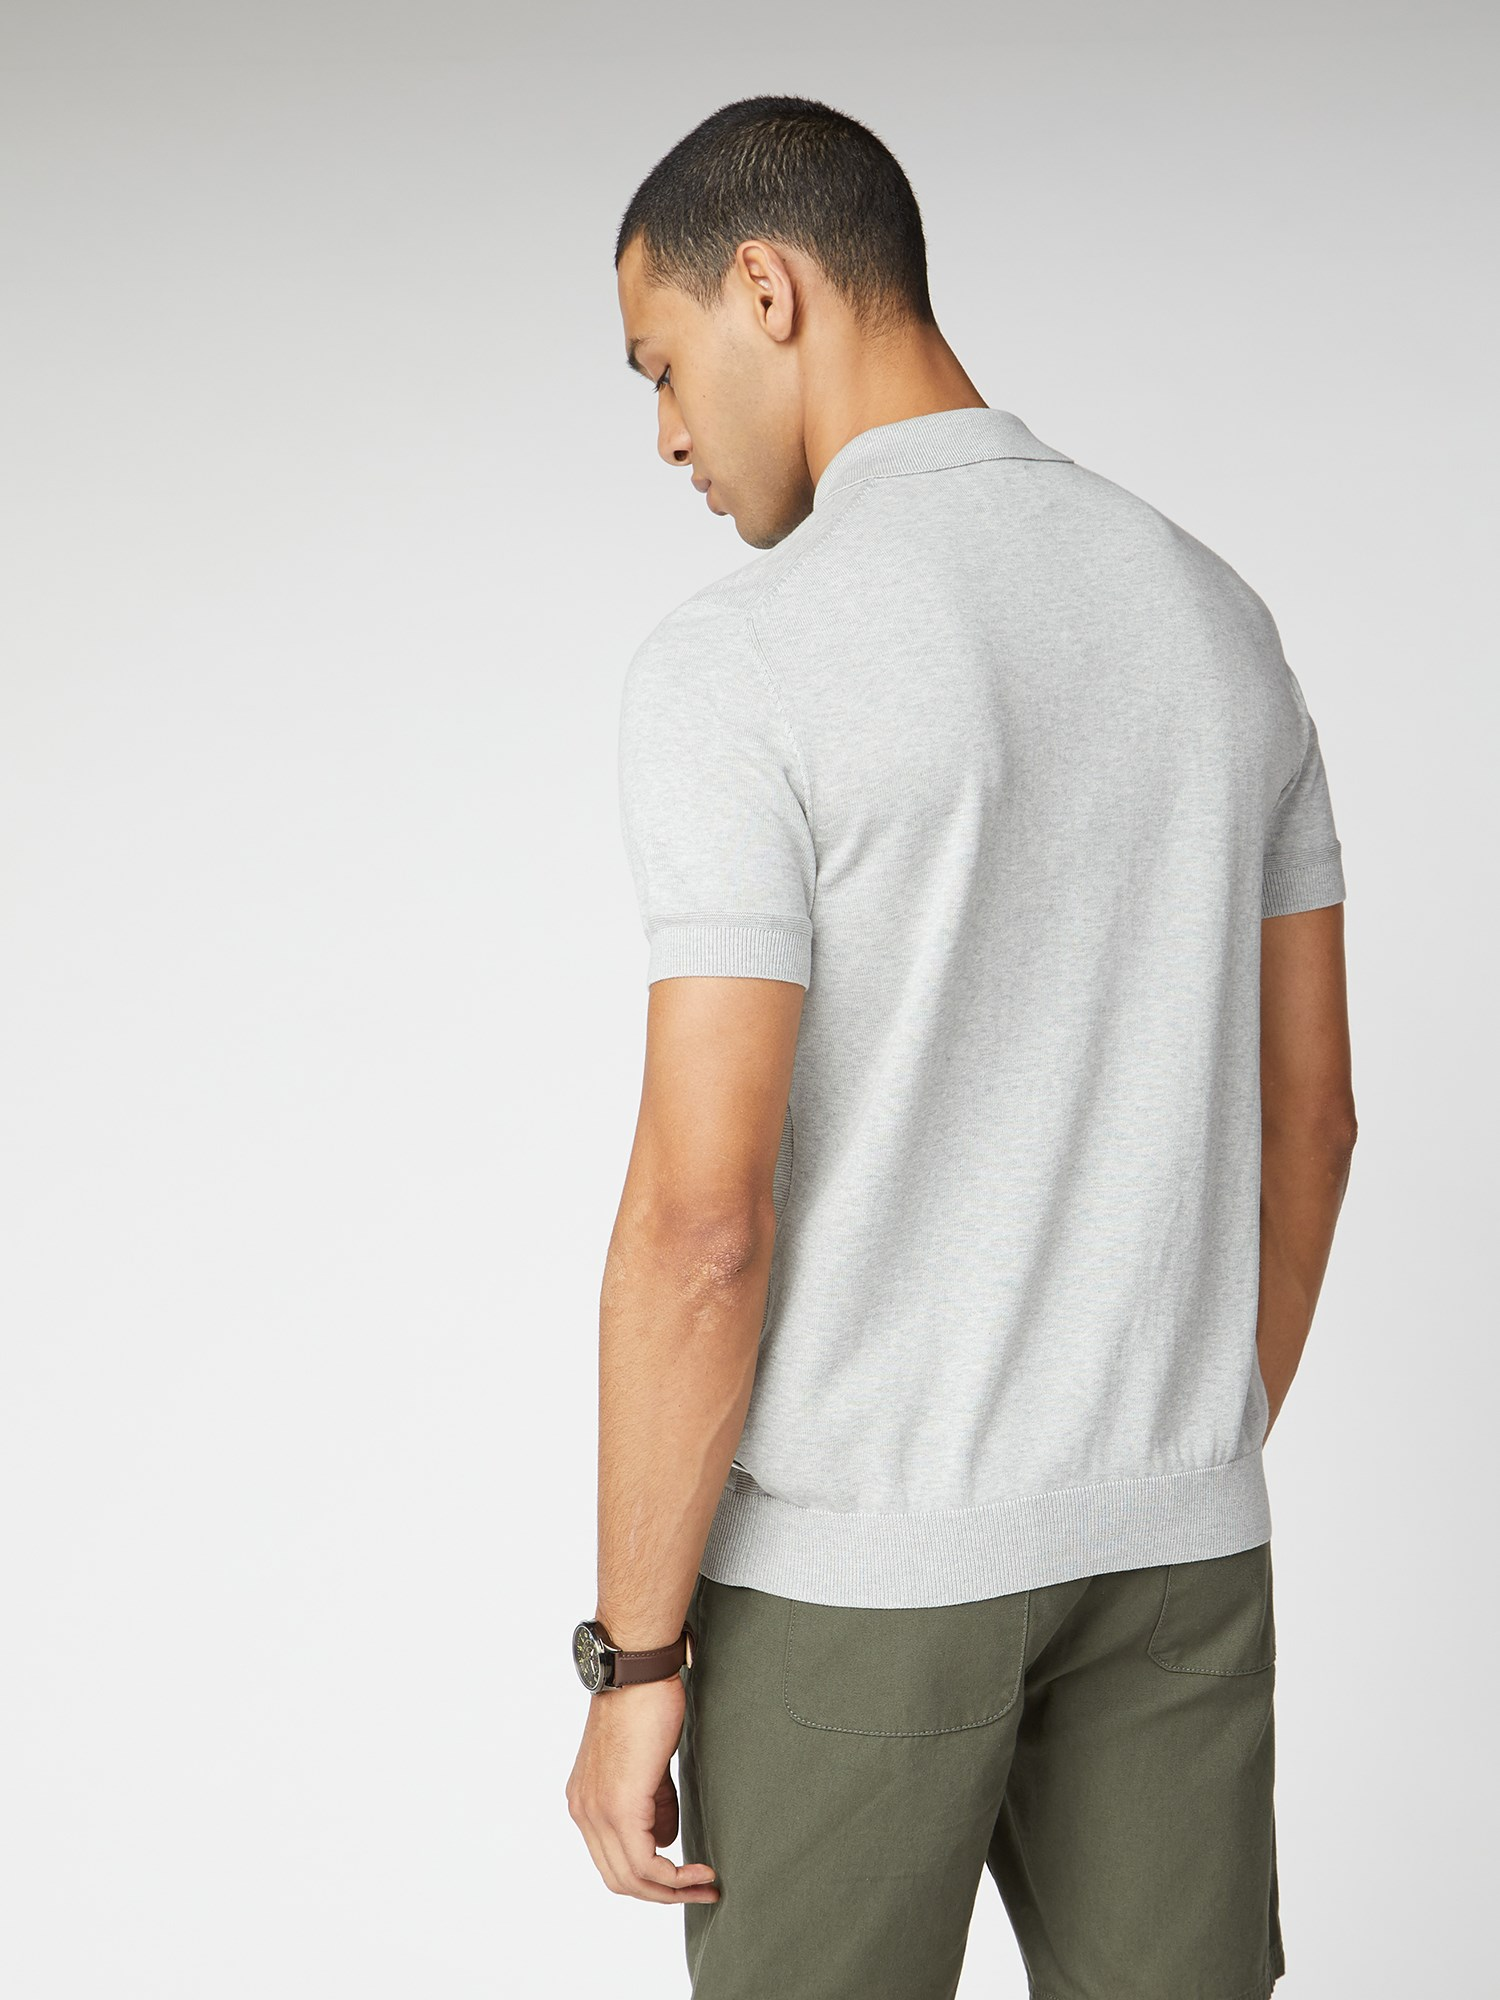 Signature Grey Knitted Cotton Short Sleeve Polo